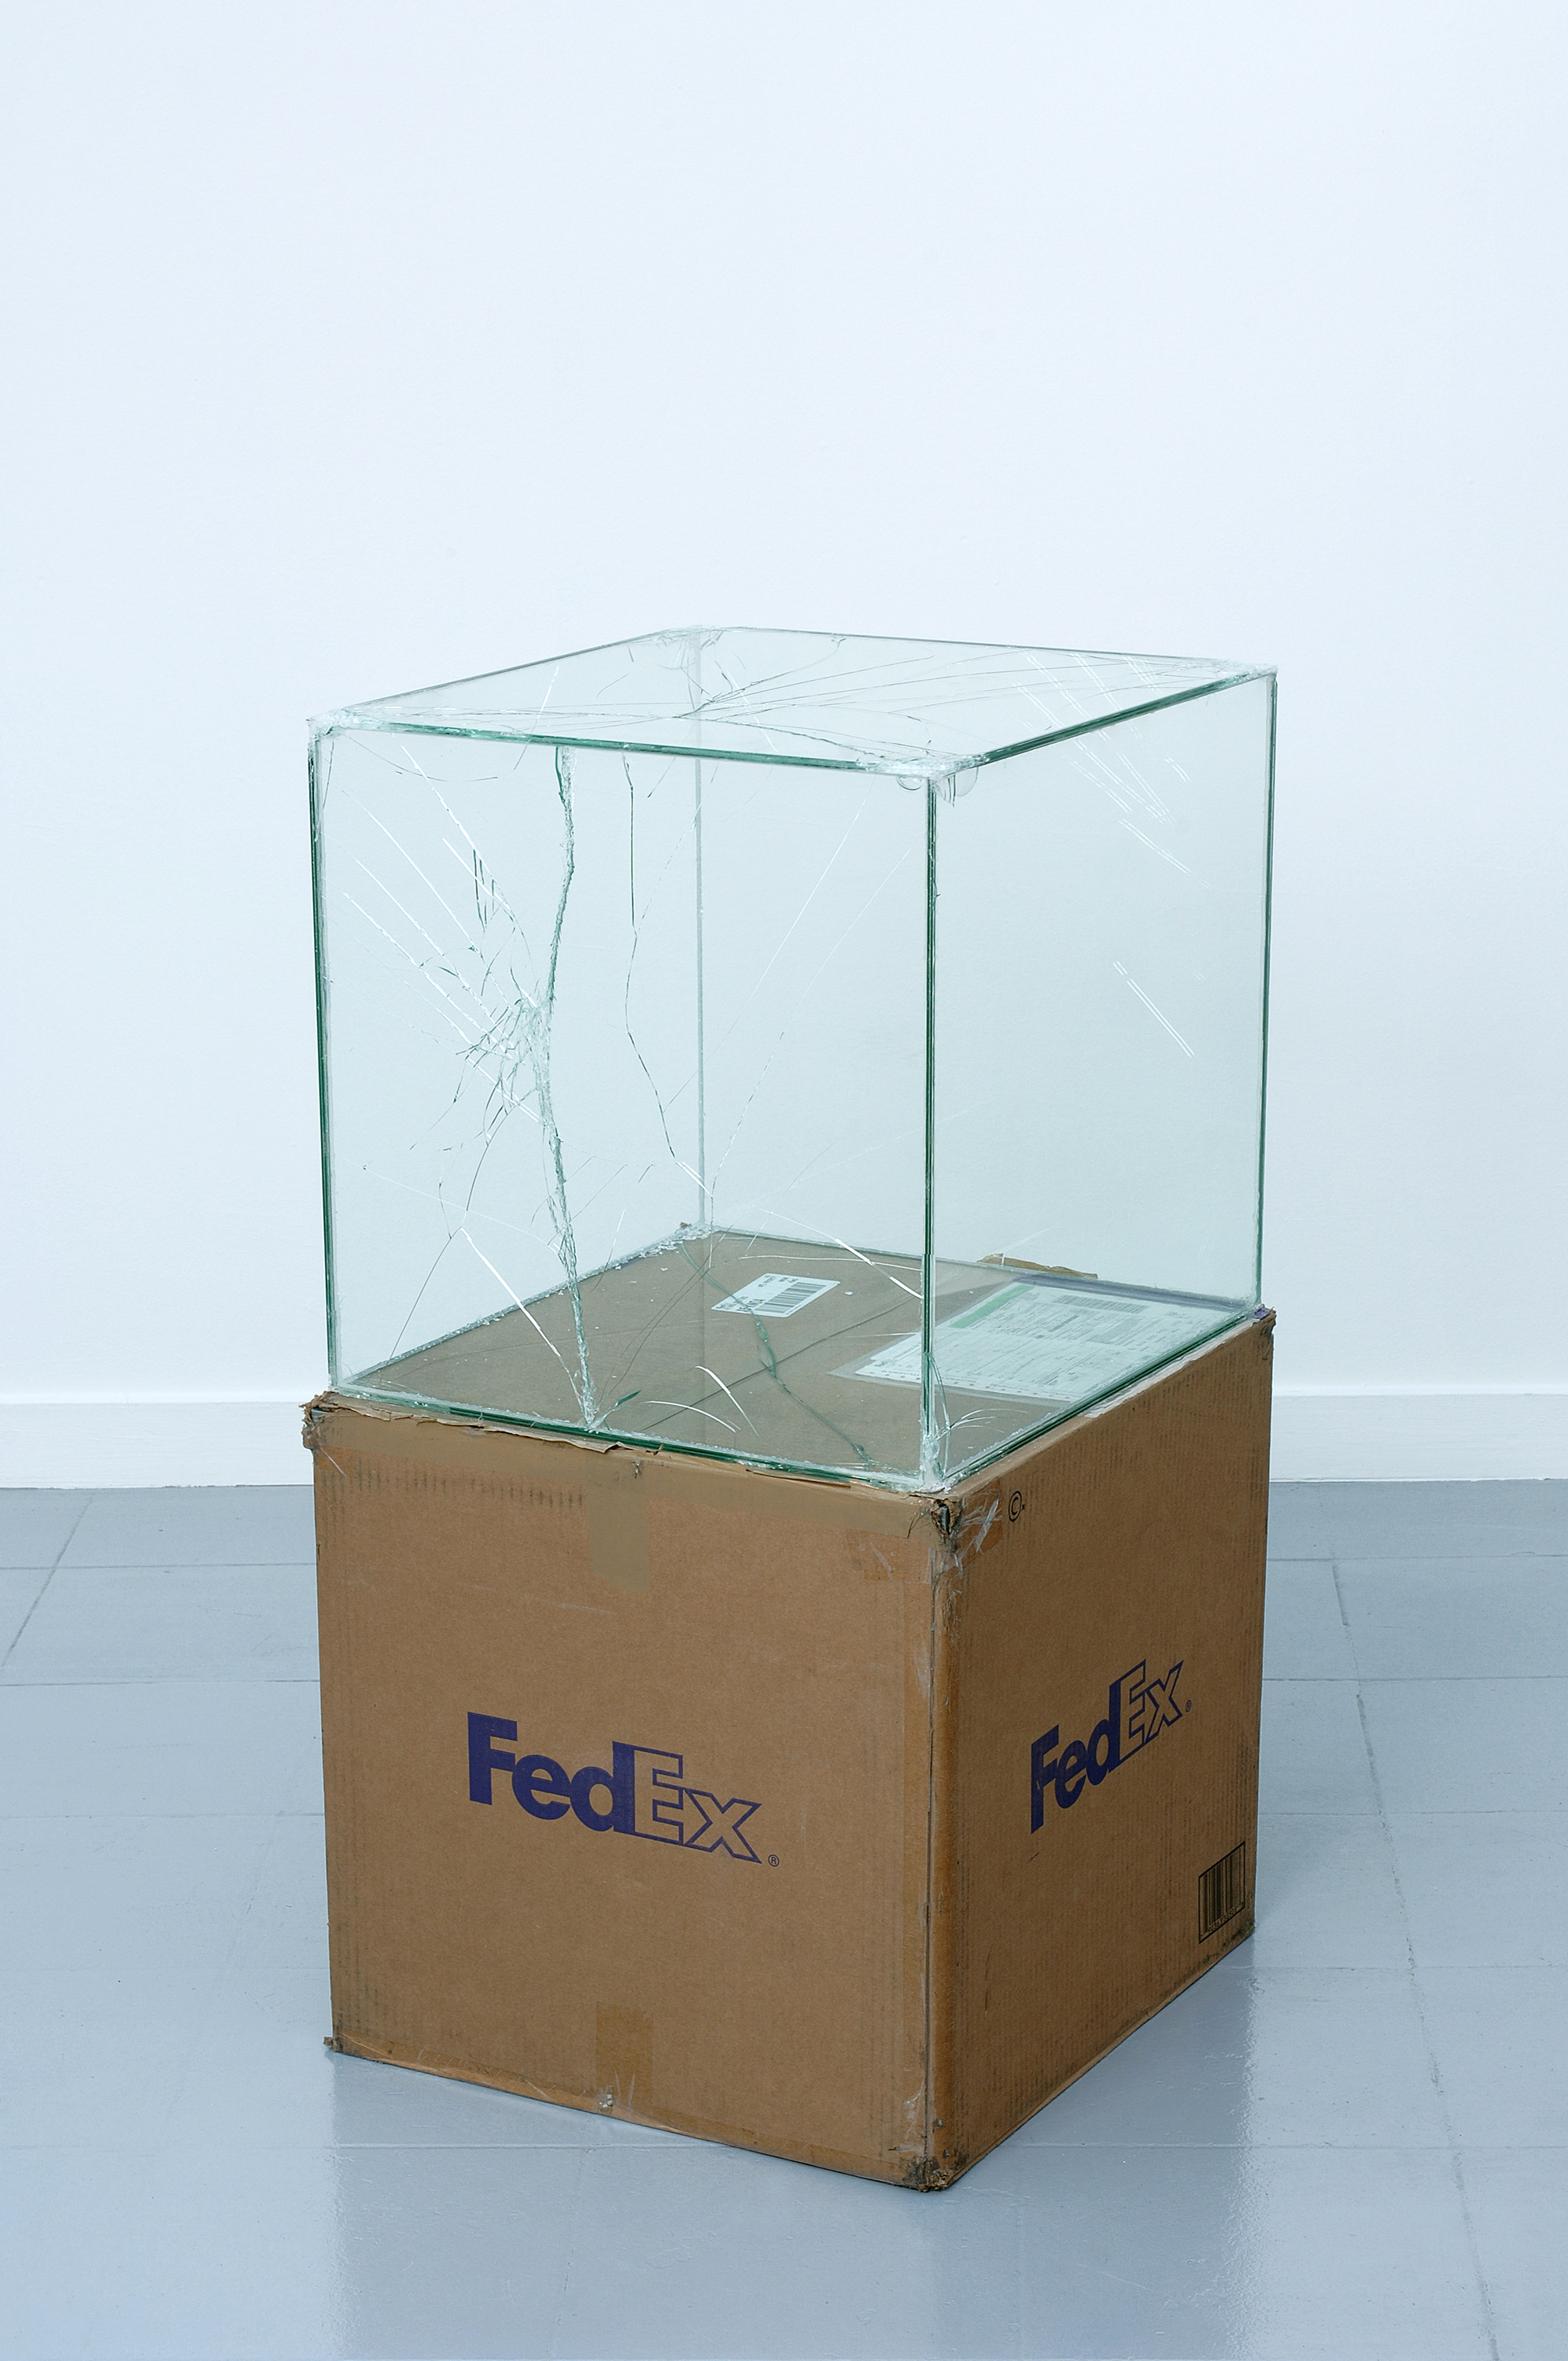 FedEx Large Kraft Box 2005 FEDEX 330508 REV 10/05 SSCC, International Priority, Los Angeles–Brussels trk#865282057975, October 27–30, 2008, International Priority, Brussels–Los Angeles trk#866071746396, December 8–9, 2008, Standard Overnight, Los Angeles–New York trk#774901659423, November 4–5, 2015, Standard Overnight, New York–Los Angeles trk#775241449093, December 21–22, 2015   2008–  Laminated glass, FedEx shipping box, accrued FedEx shipping and tracking labels, silicone, metal, and tape  20 x 20 x 20 inches   FedEx Glass Works, 2007–    Industrial Pictures, 2008